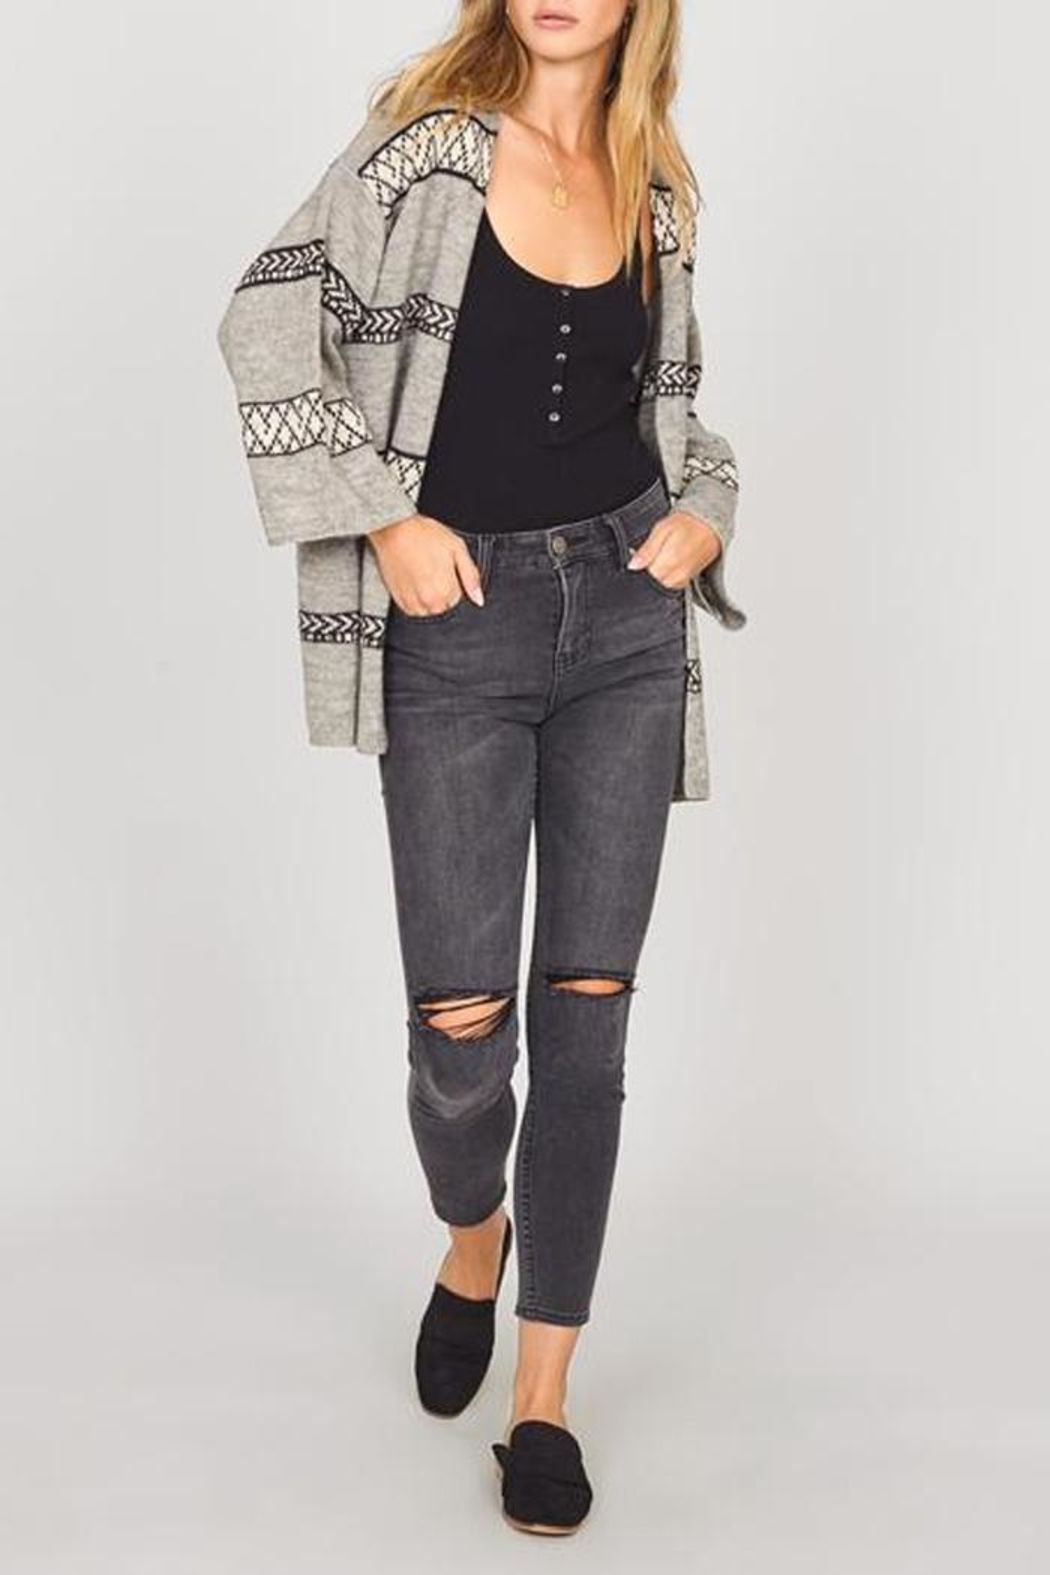 AMUSE SOCIETY Everyday Adventure Sweater - Side Cropped Image